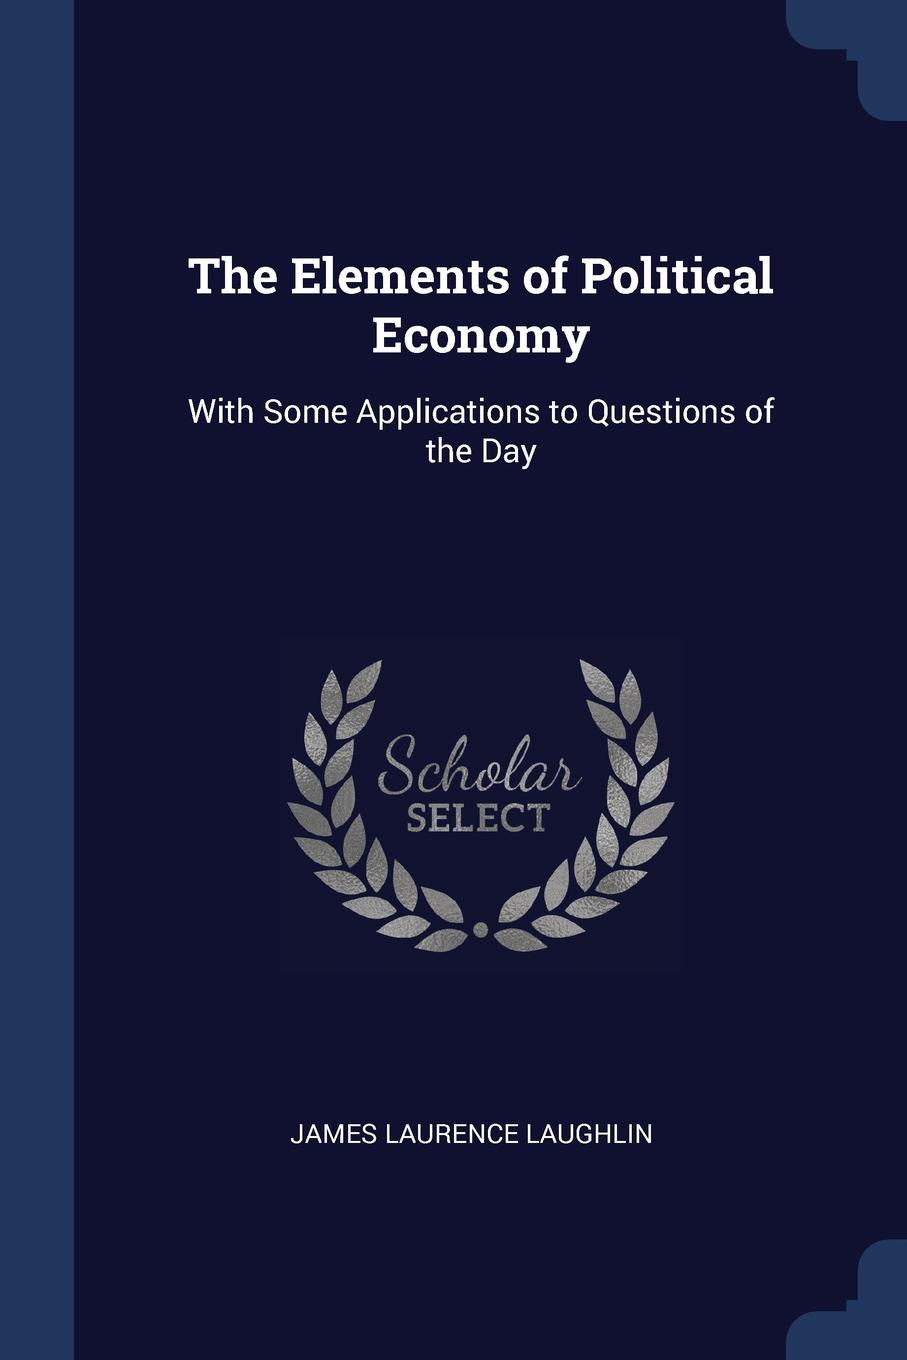 James Laurence Laughlin The Elements of Political Economy. With Some Applications to Questions the Day